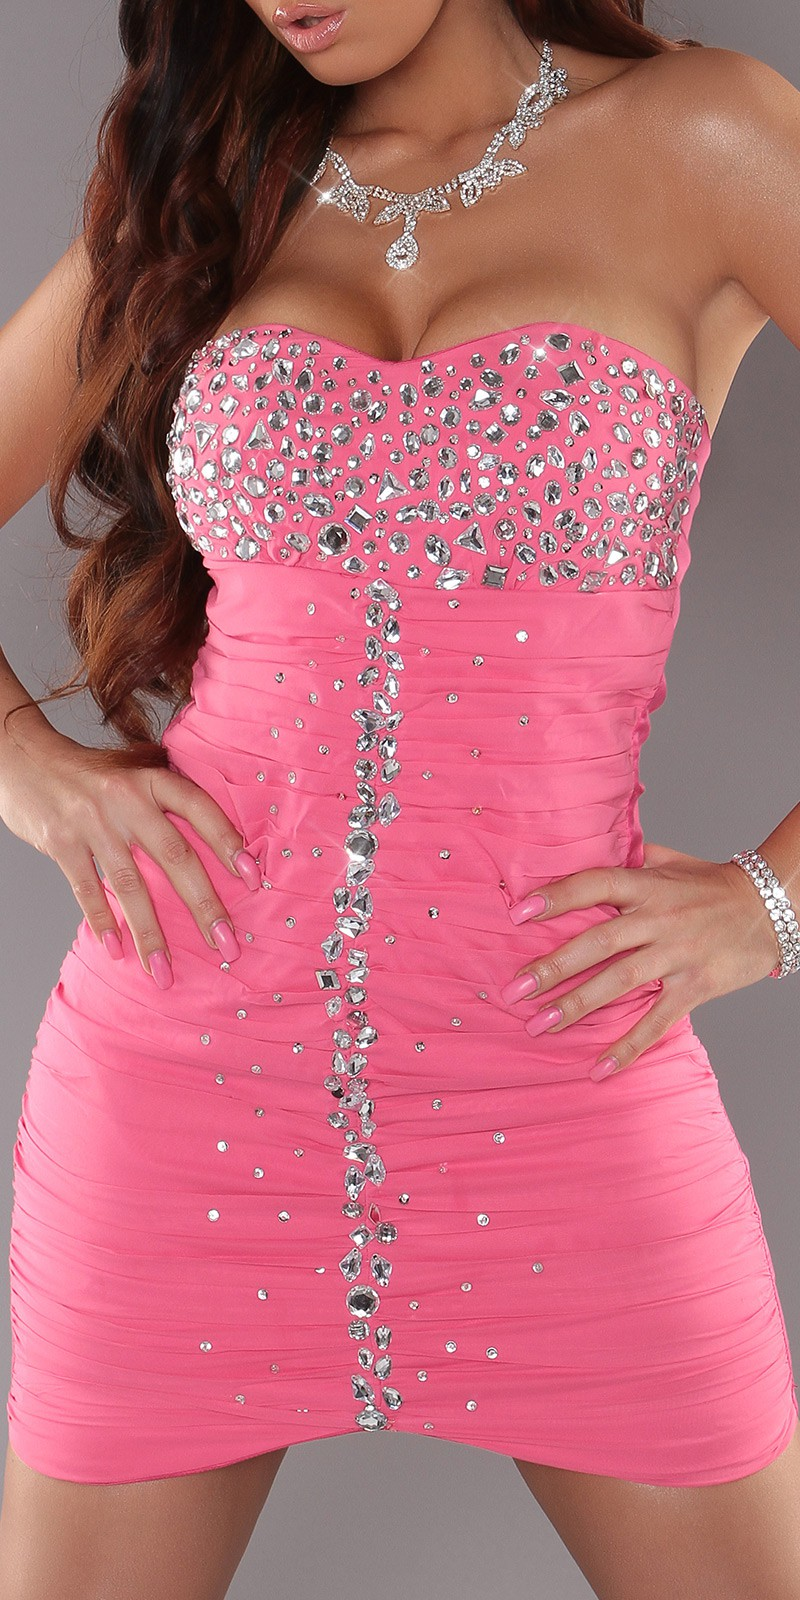 Pink Slinky Strapless Evening Dress With Rhinestones